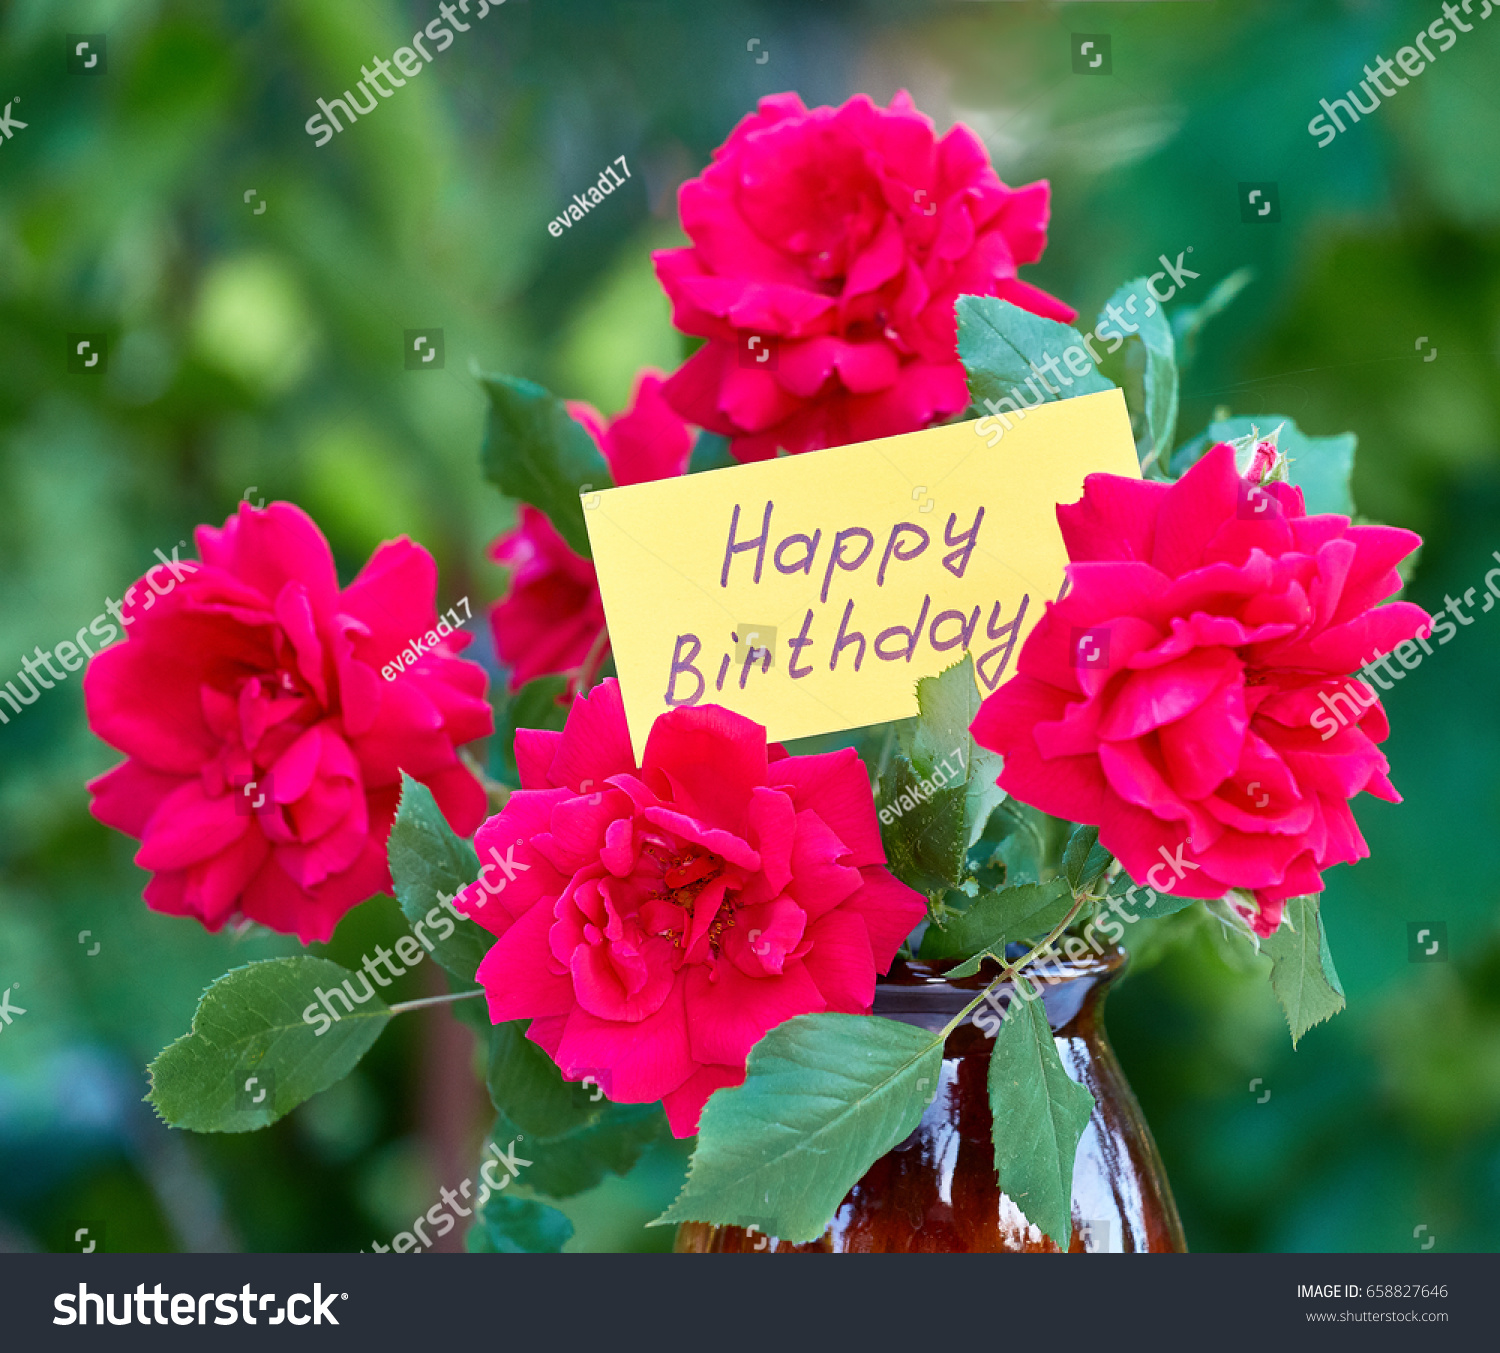 Beautiful Pictures Of Flowers Beautiful Flowers Card Happy Birthday Stock Photo Edit Now